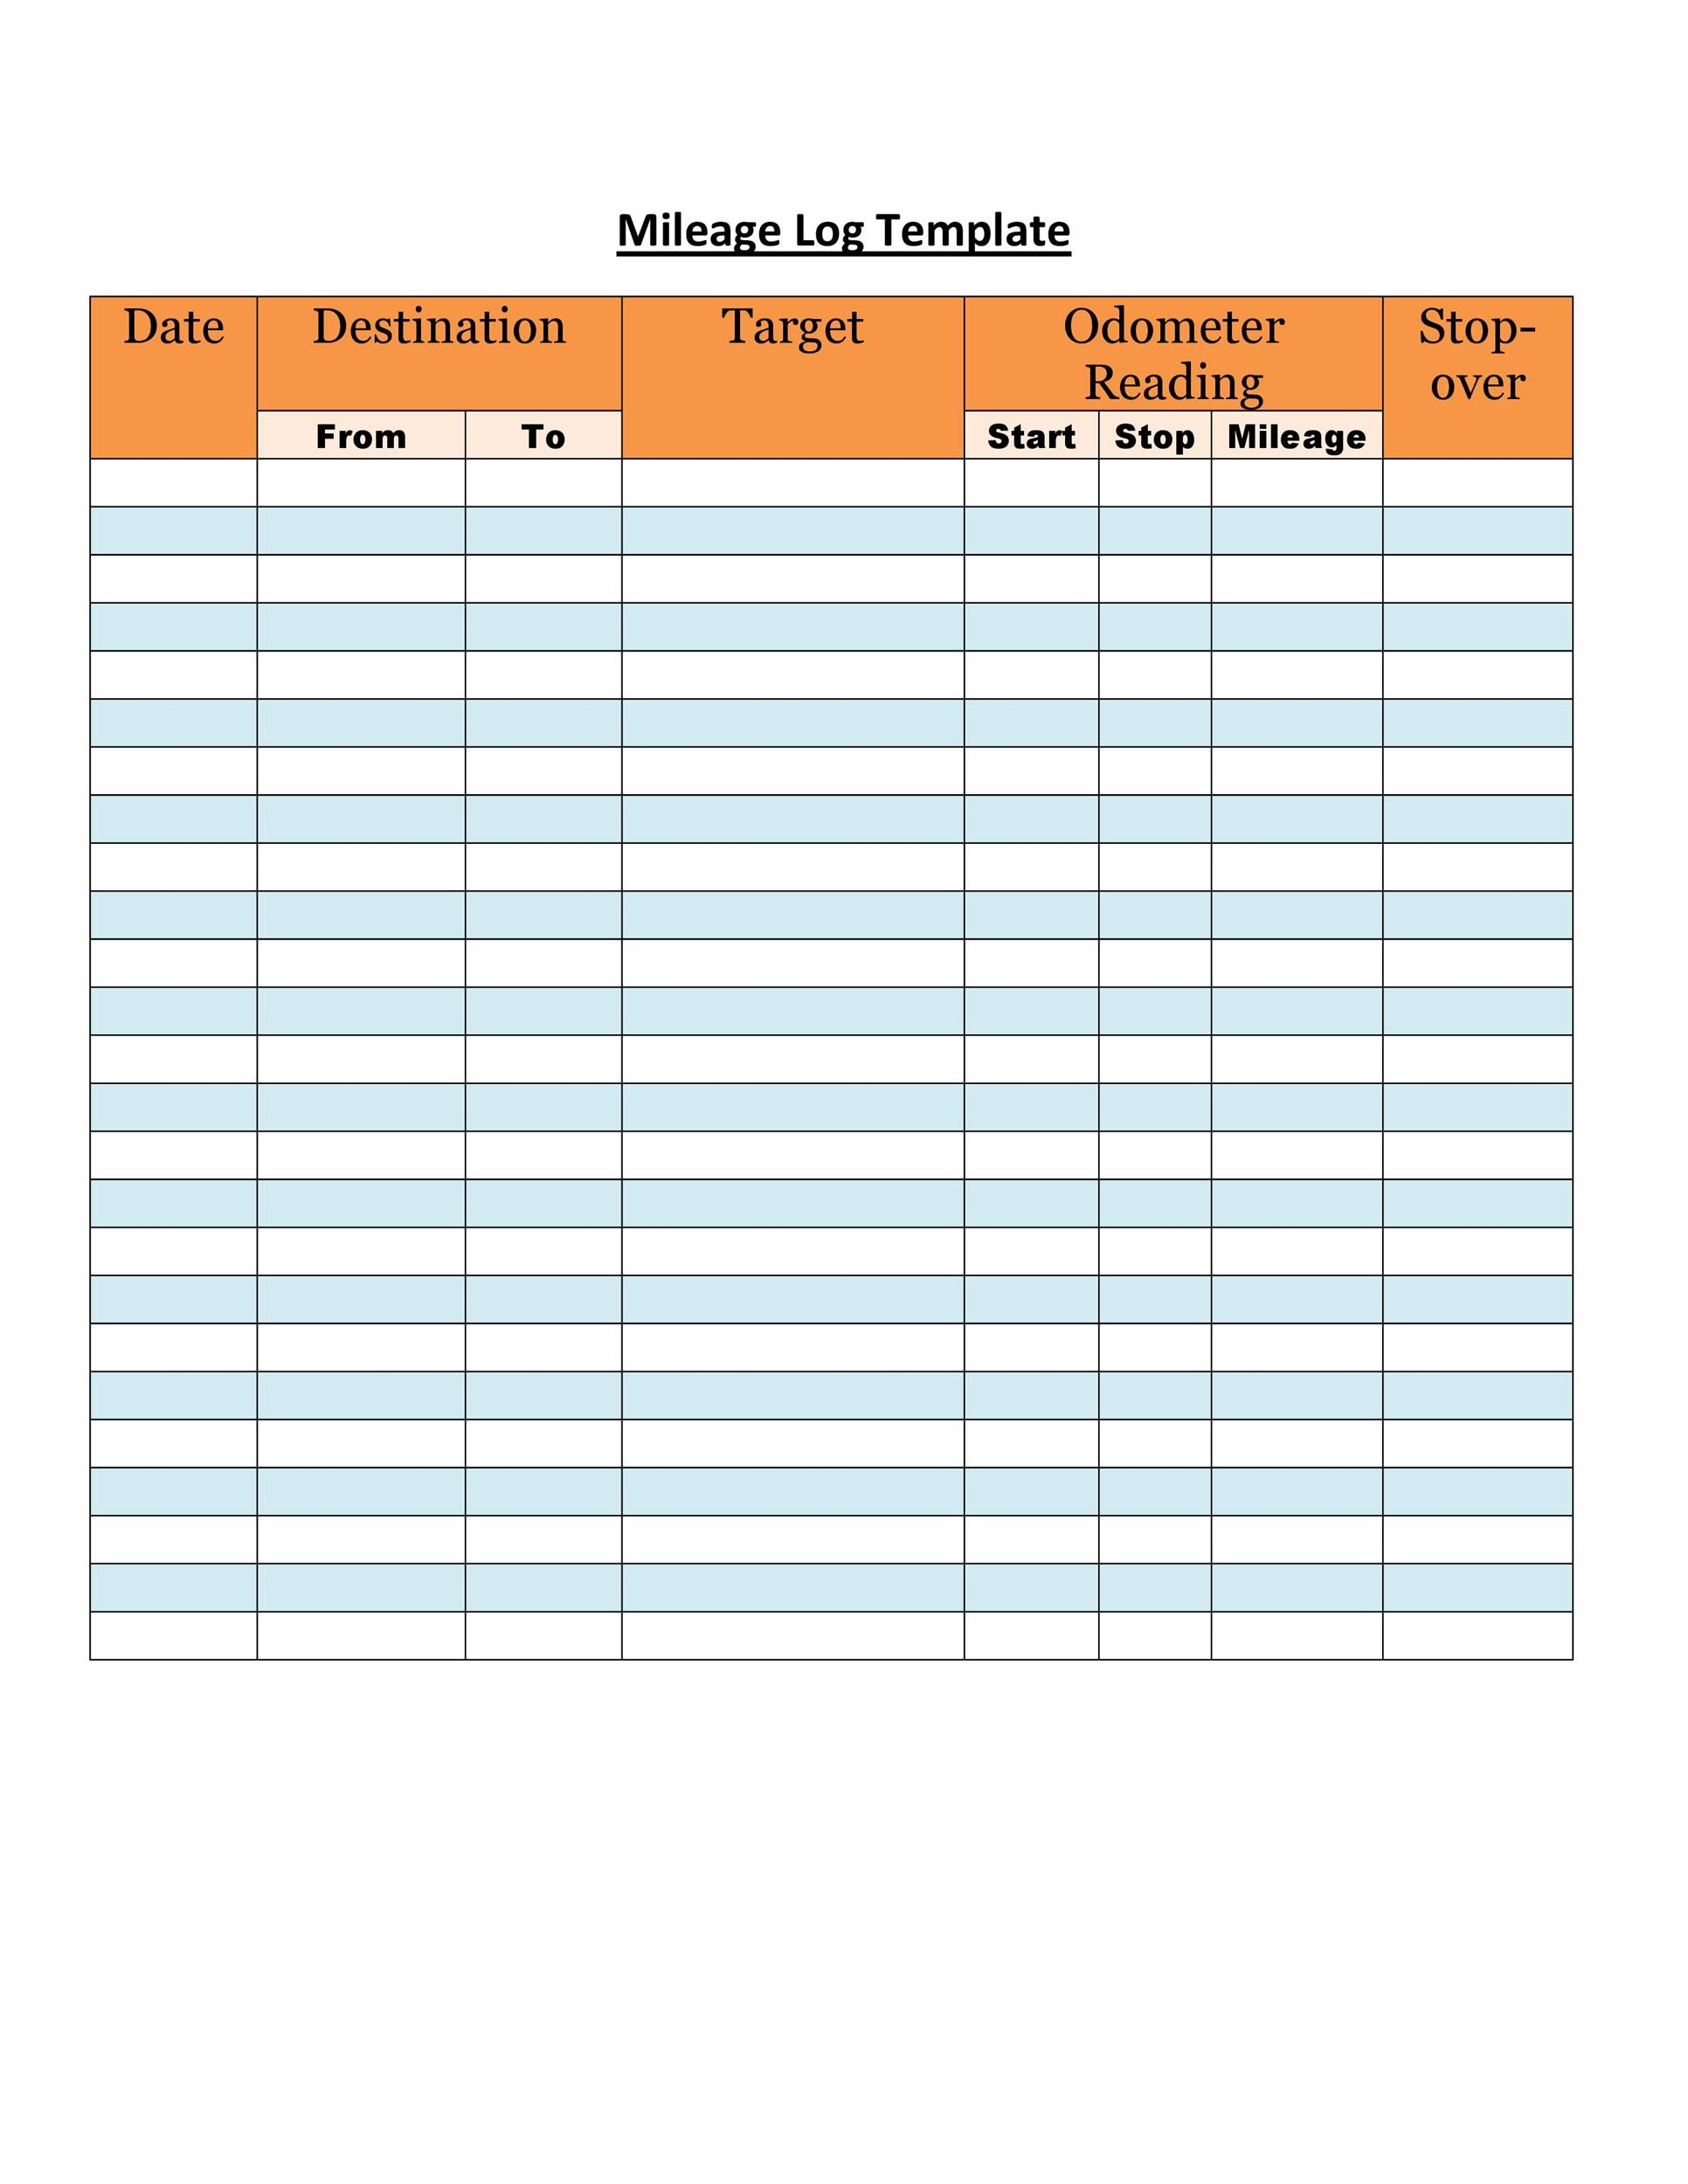 31 printable mileage log templates  free   u1405 templatelab